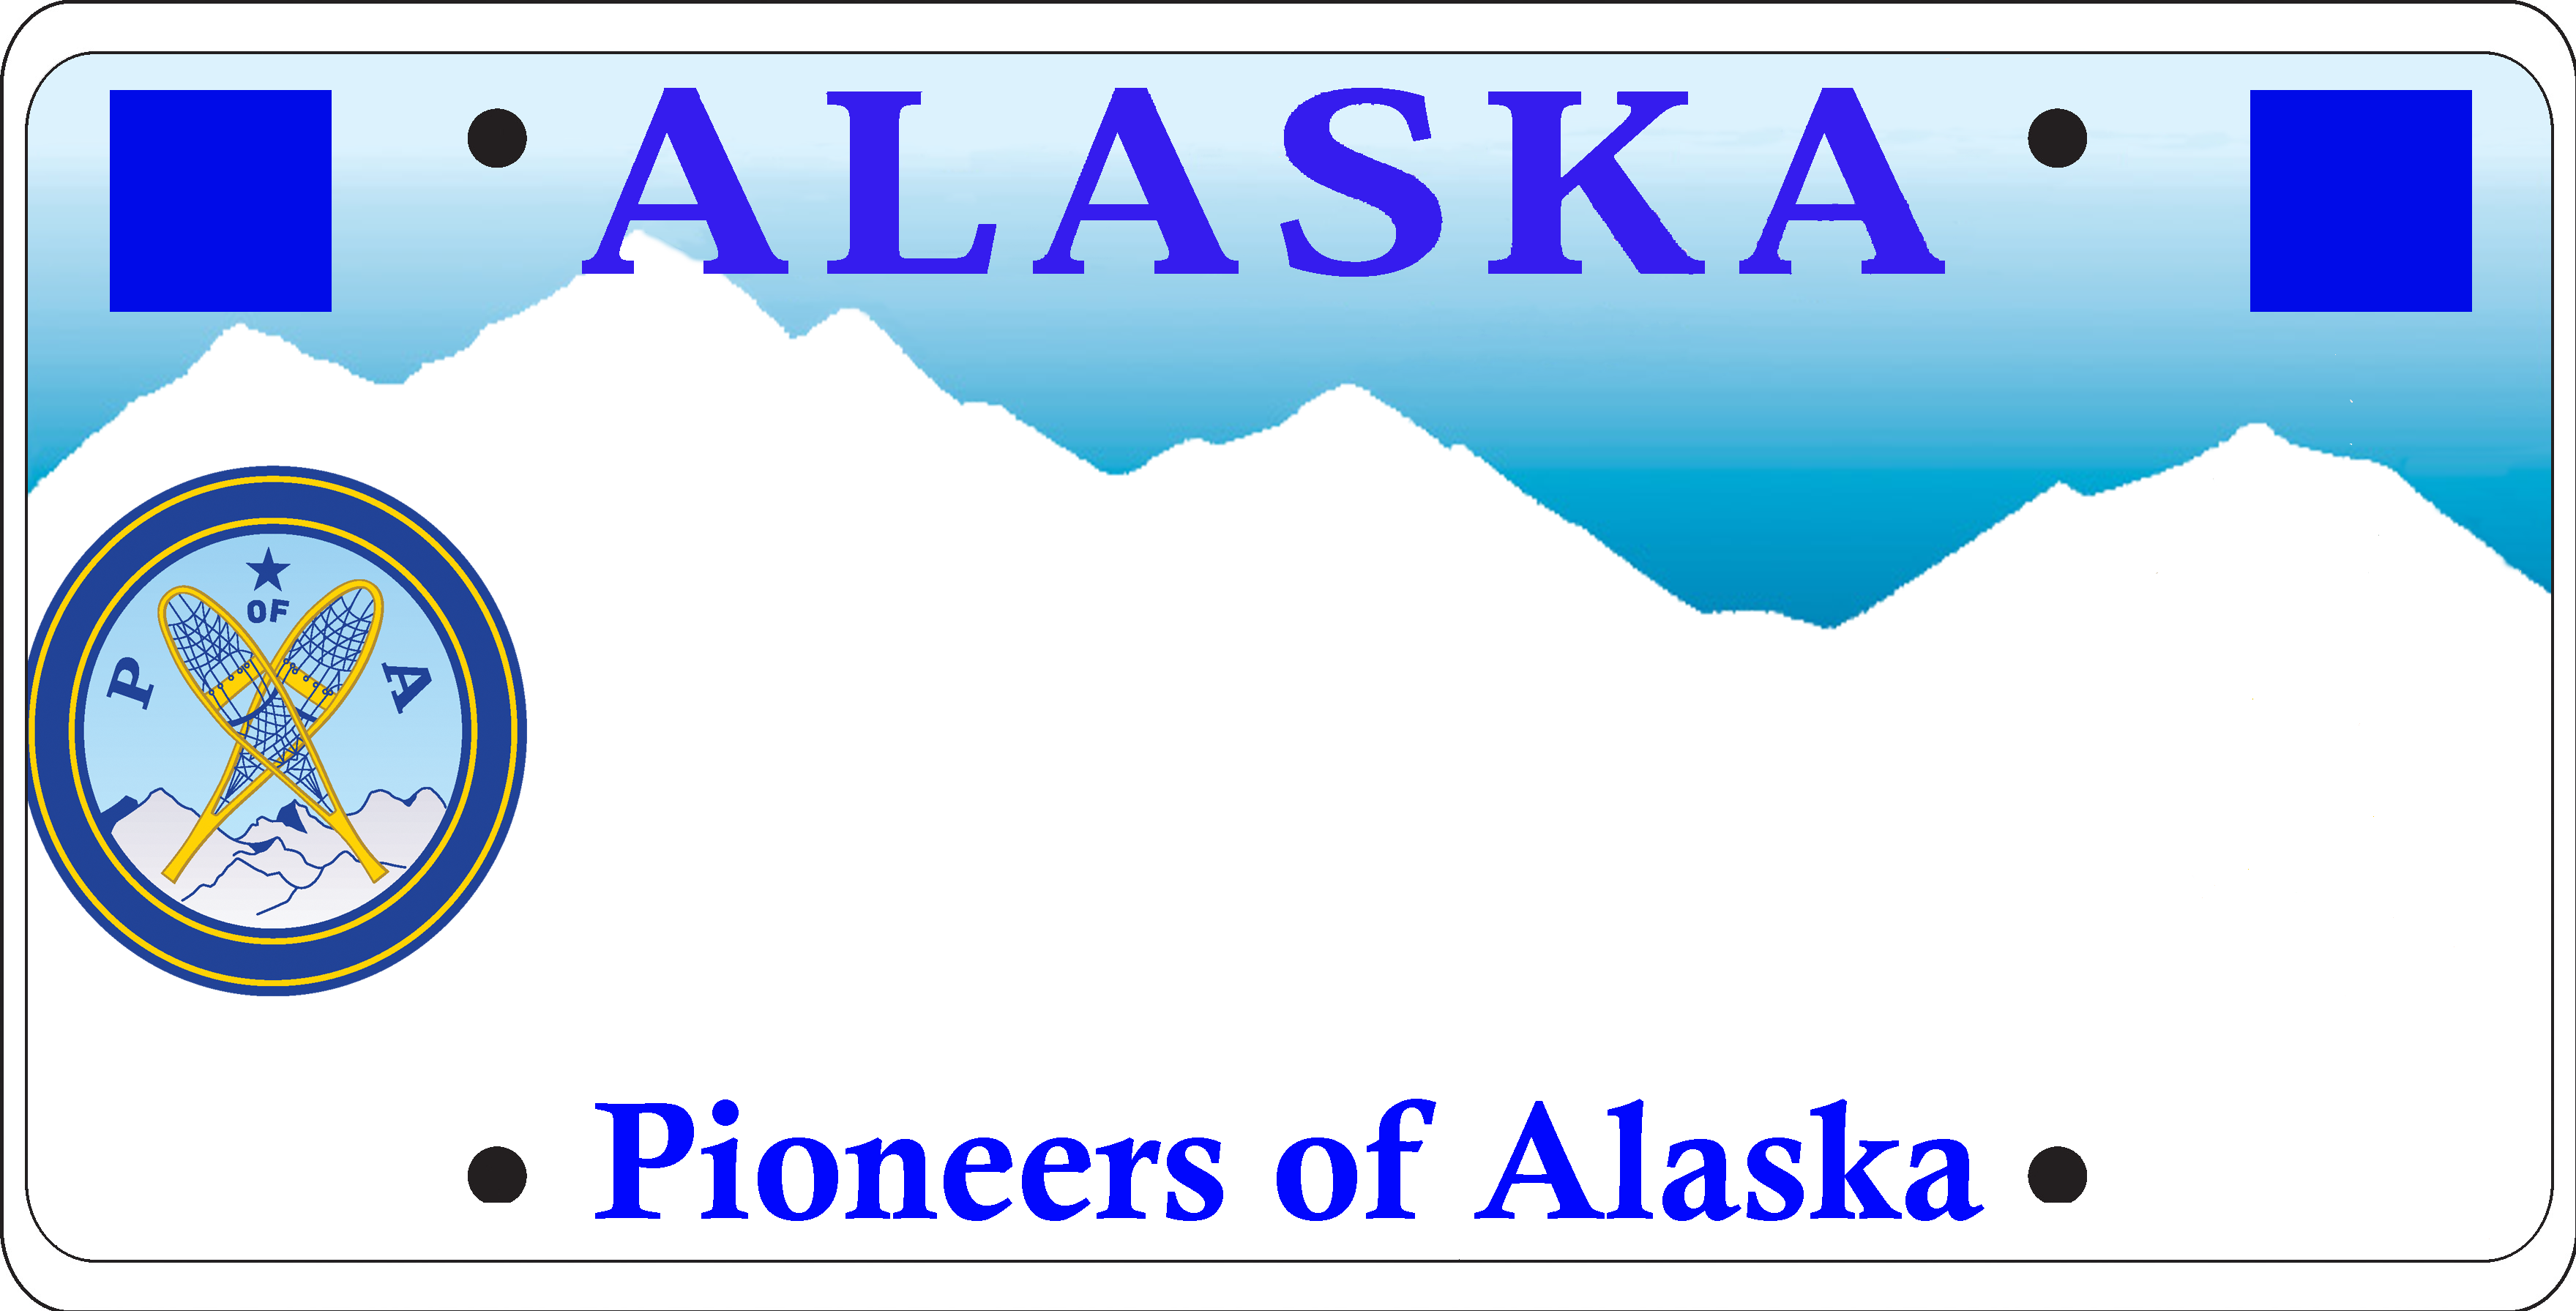 Pioneers of Alaska, $50, $0, Proof of Membership